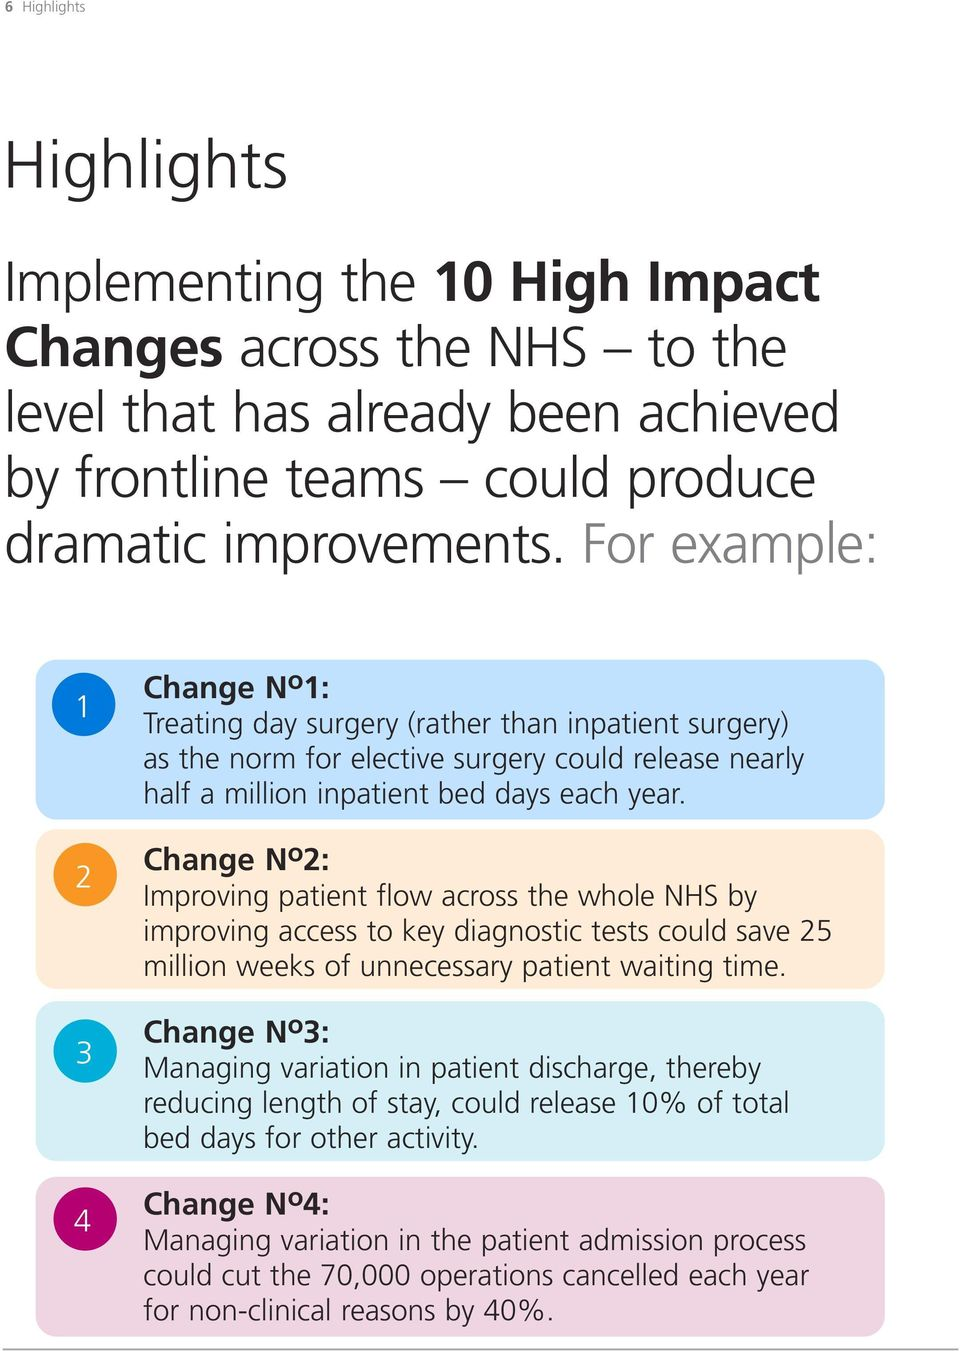 Change N o 2: Improving patient flow across the whole NHS by improving access to key diagnostic tests could save 25 million weeks of unnecessary patient waiting time.